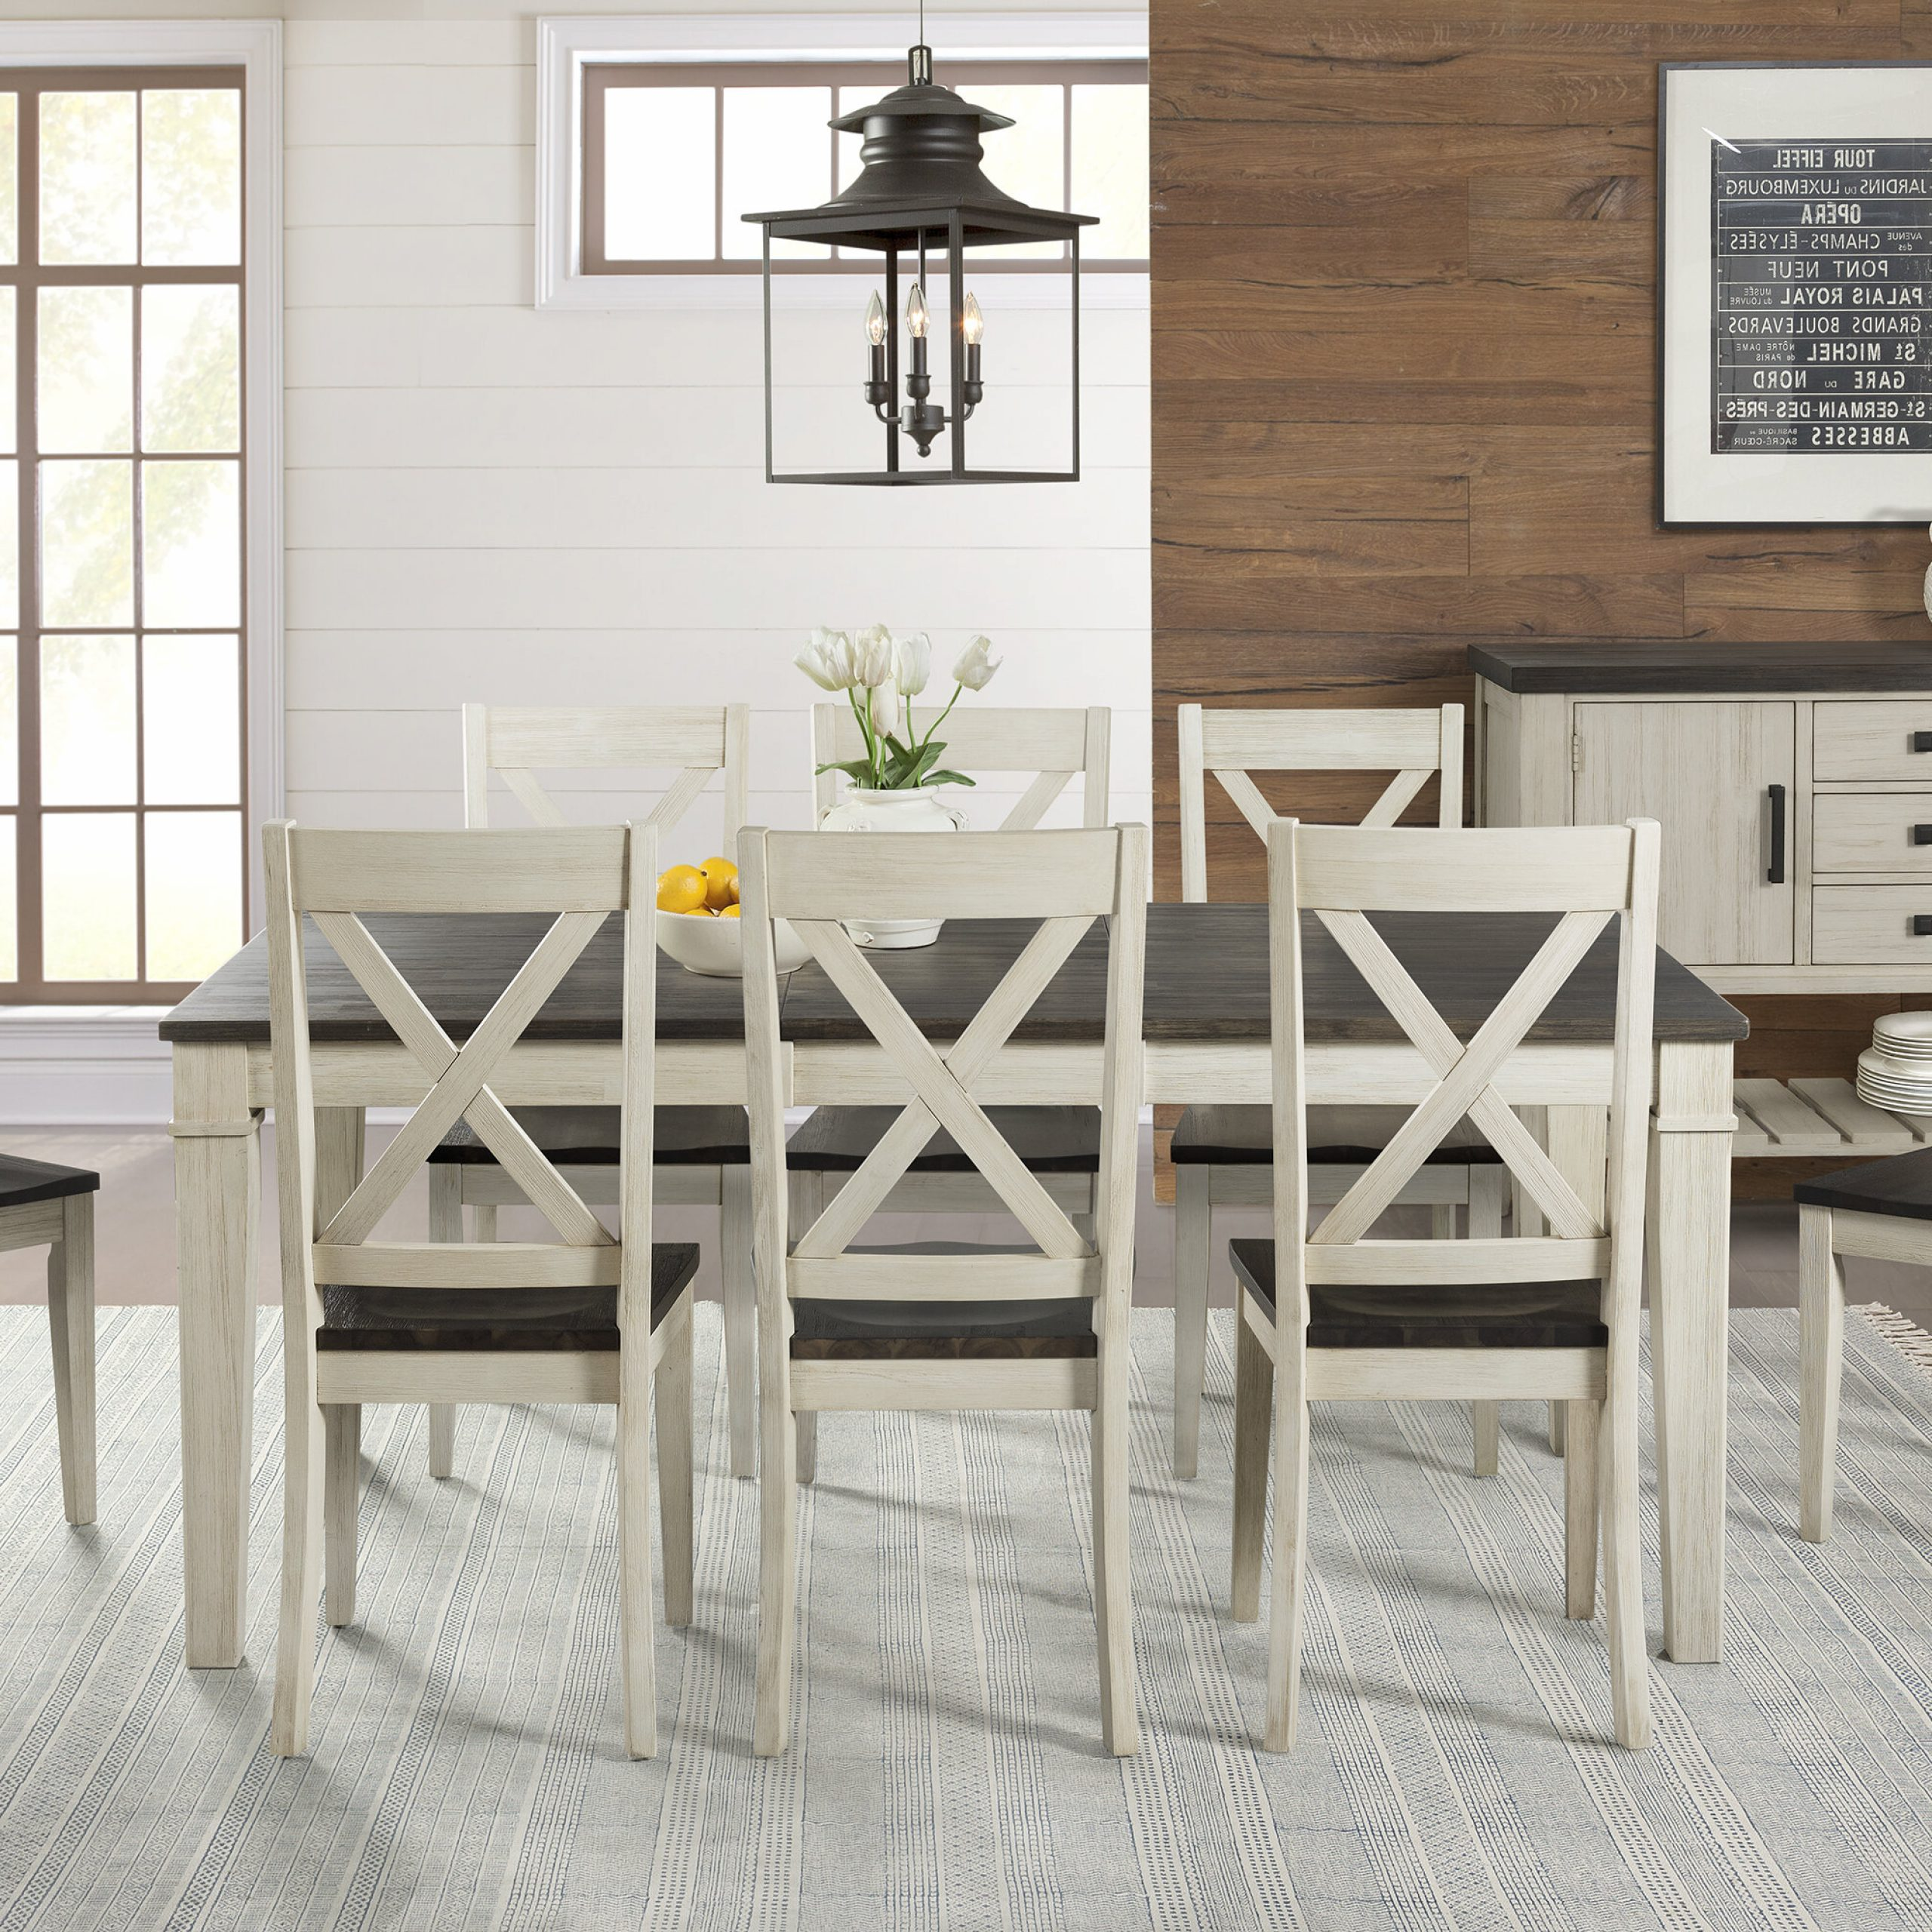 Ridgley 9 Piece Extendable Solid Wood Dining Set With Best And Newest Hewn Oak Lorraine Extending Dining Tables (View 21 of 25)